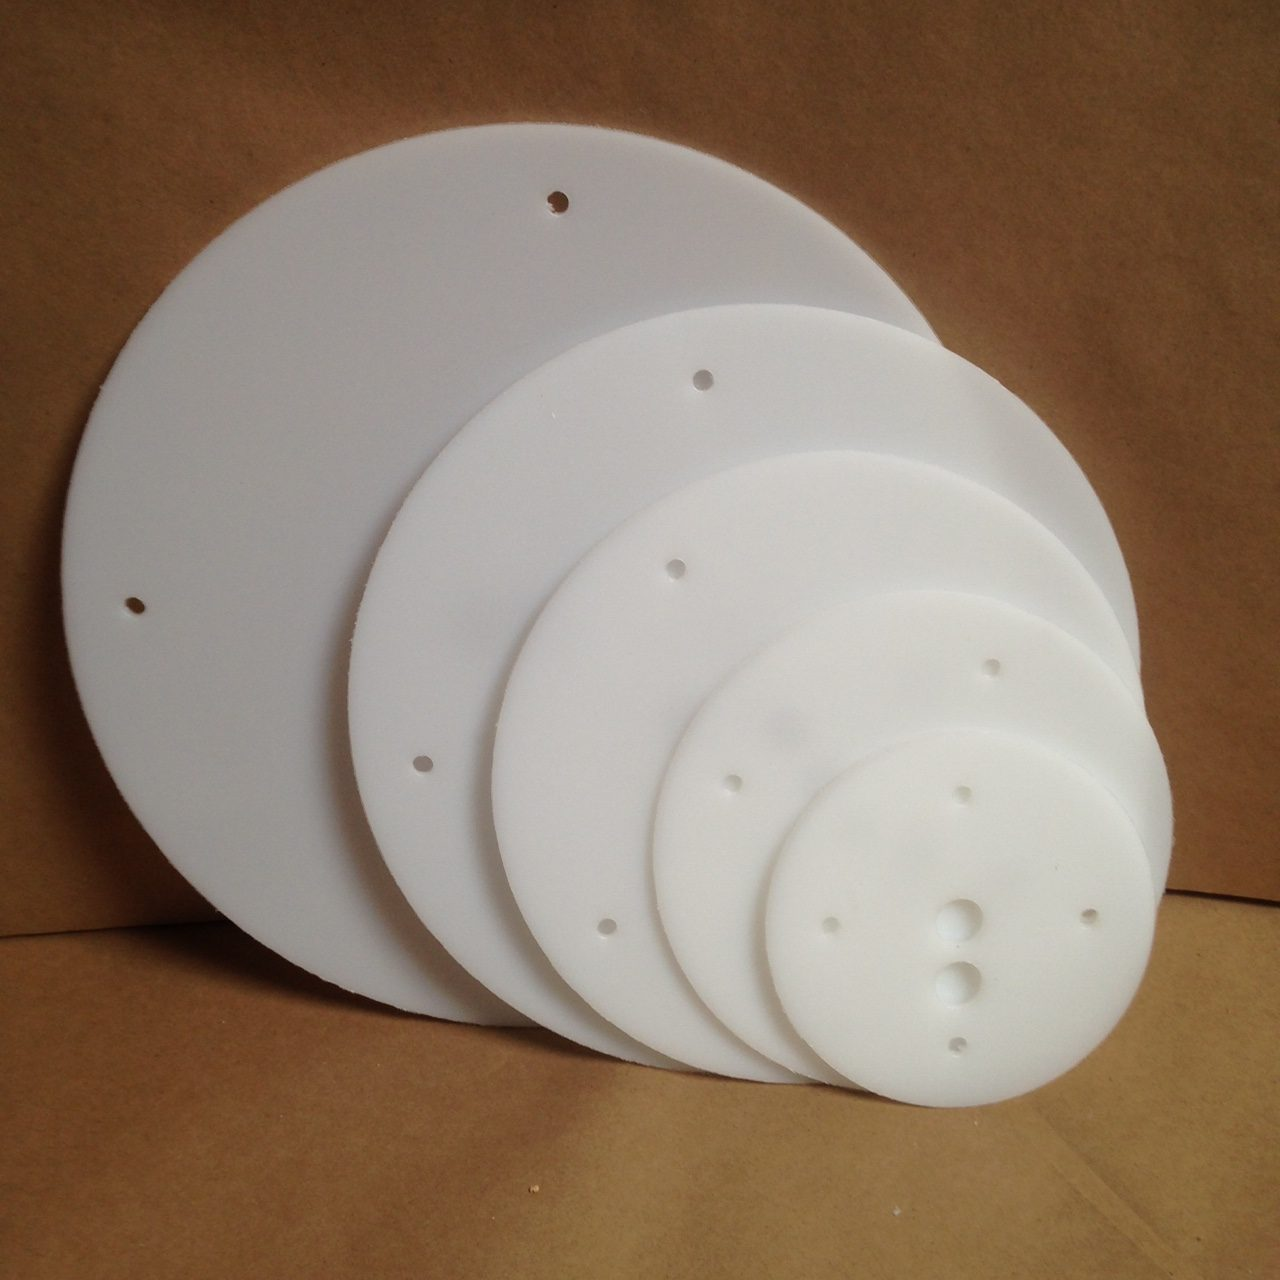 14 12 10 8 6 Inch Round Plastic Cake Board Set Hdpe